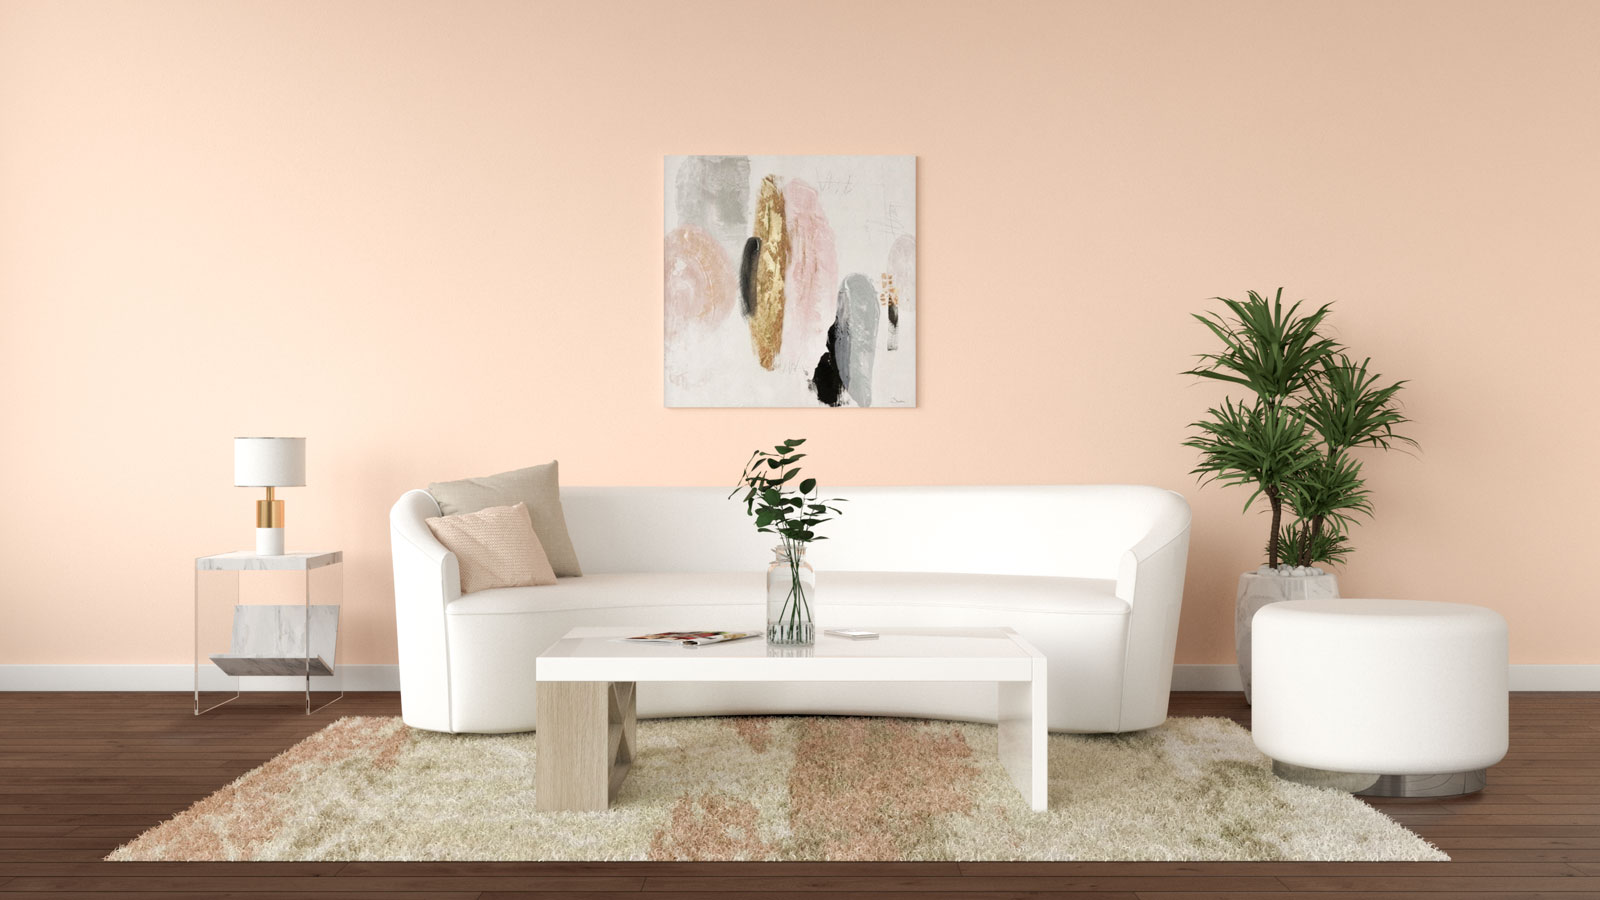 Peach wall with white furniture